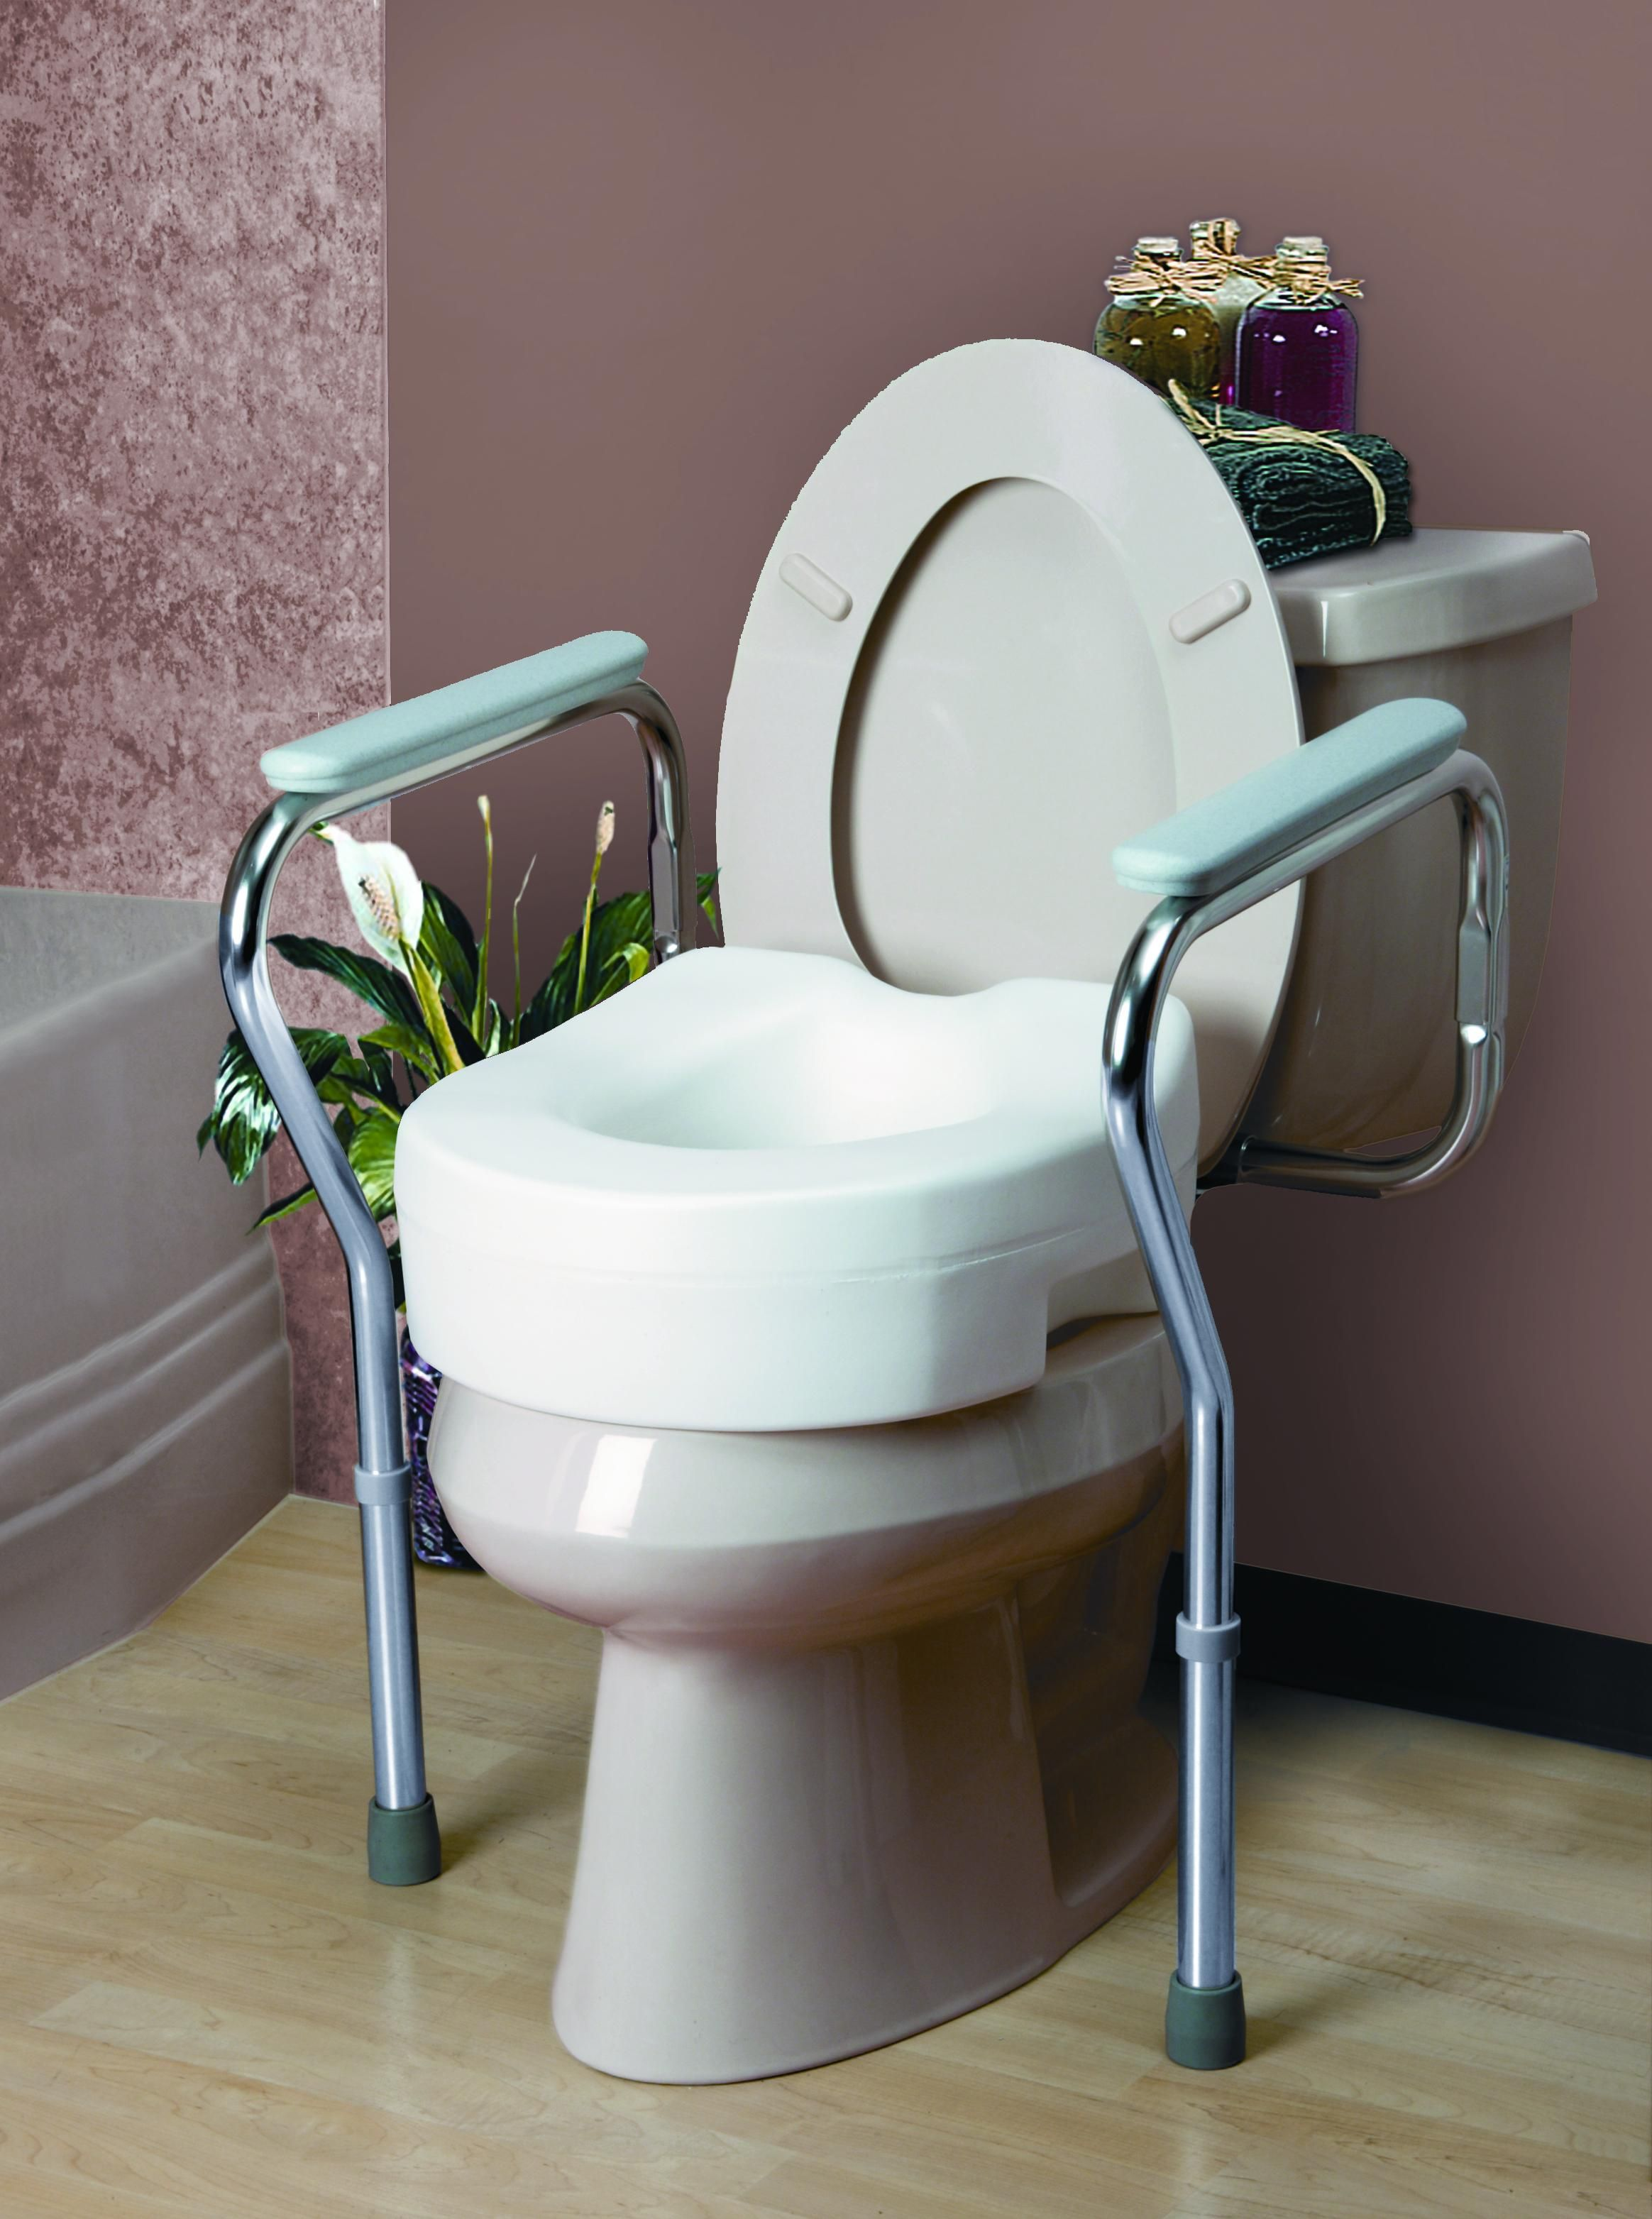 ToiletsfortheElderly Learn more at http://www.disabledbathrooms.org ...